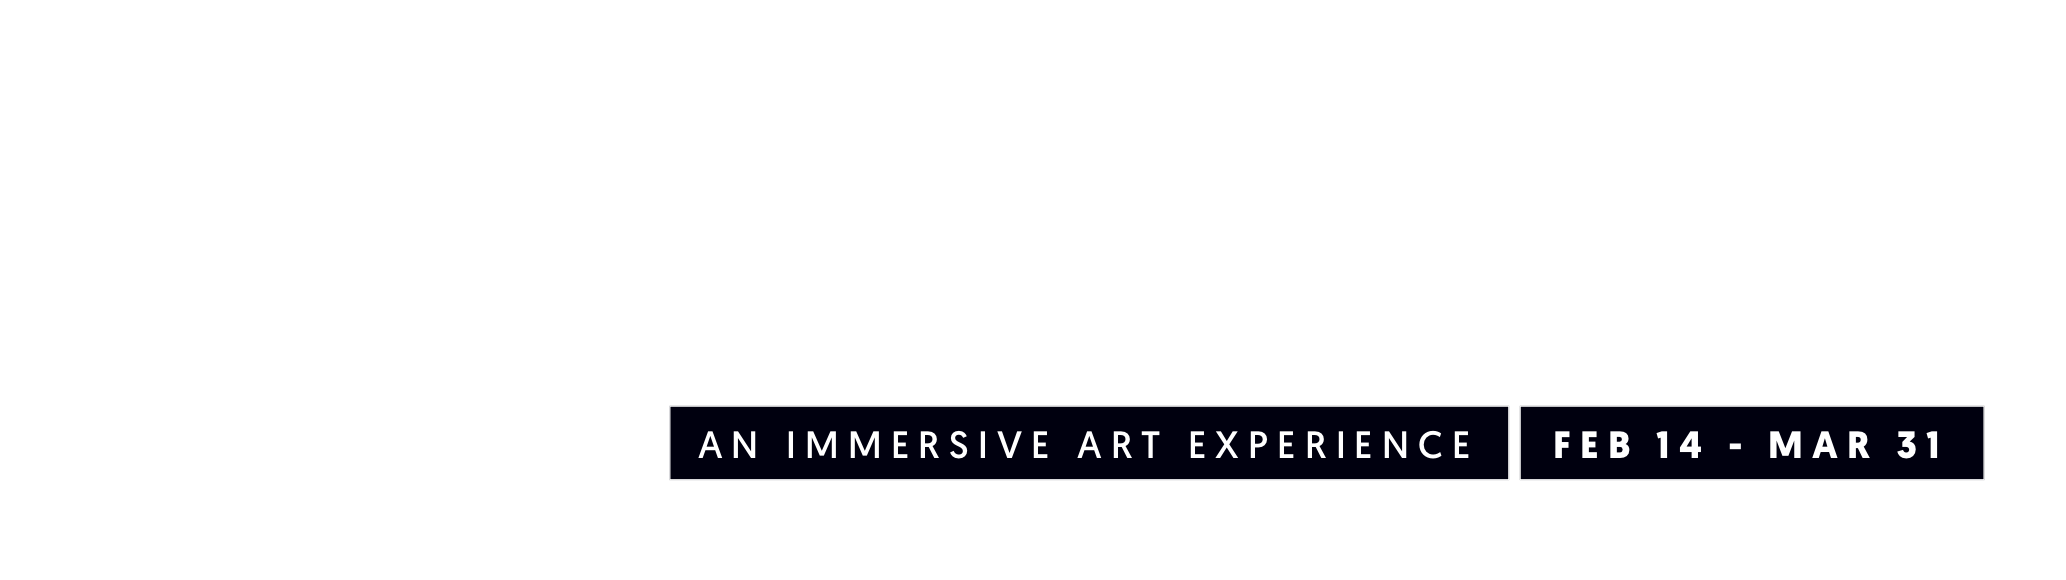 Tickets for Hopscotch:  Light and Sound in Austin from ShowClix